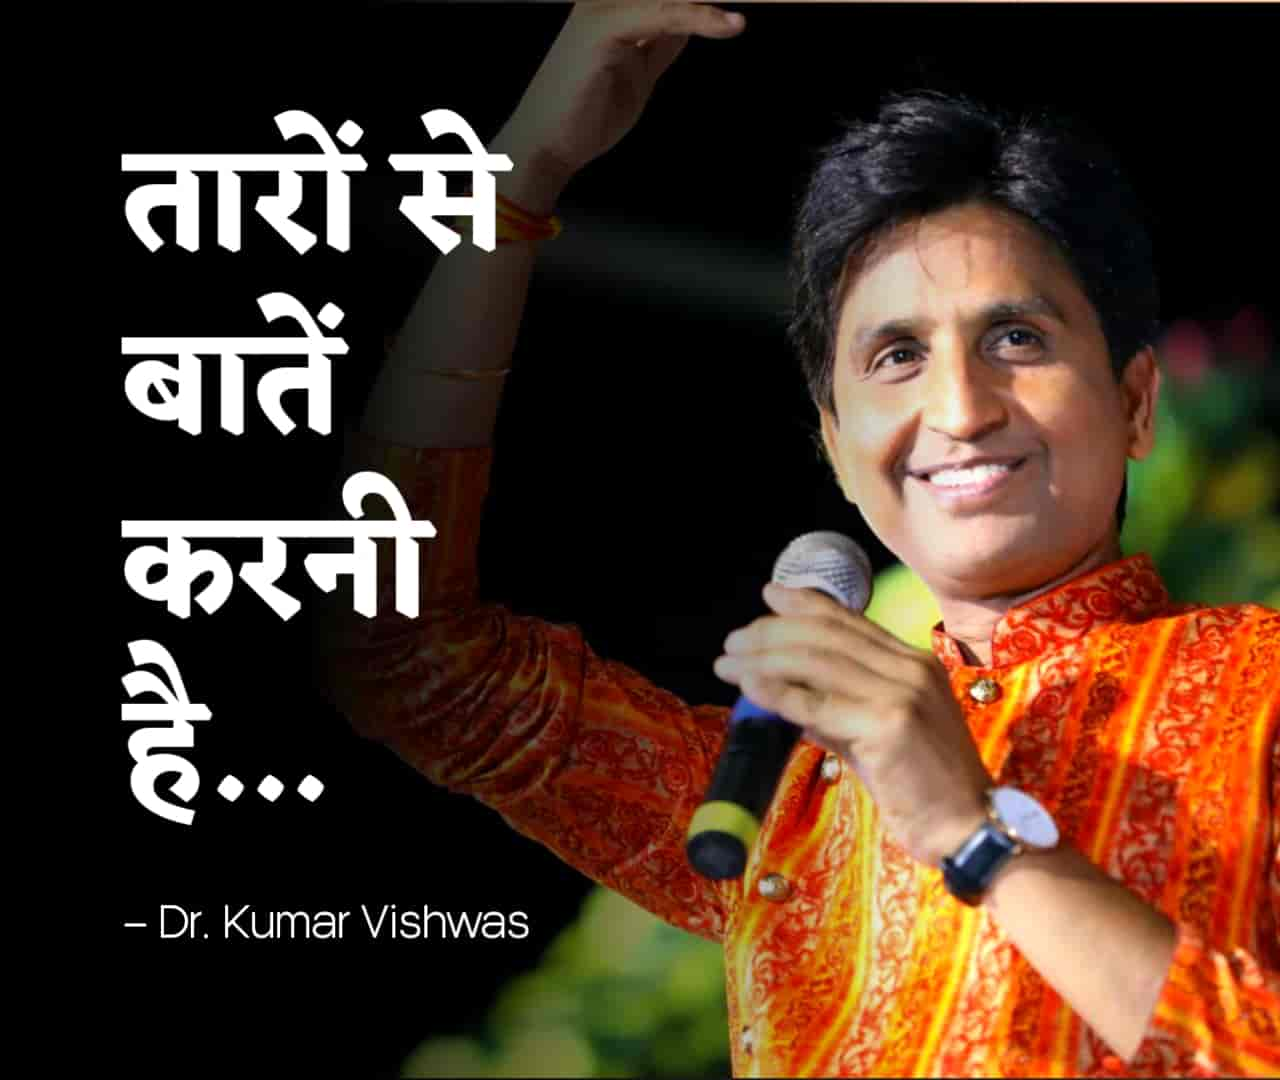 This very beautiful poetry by Kumar Vishwas which is based on increasing pollution. A beautiful poetry, presented by Kumar Vishwas in a program at ABV News Kavi Sammelan, while taking a dig at the rising pollution.